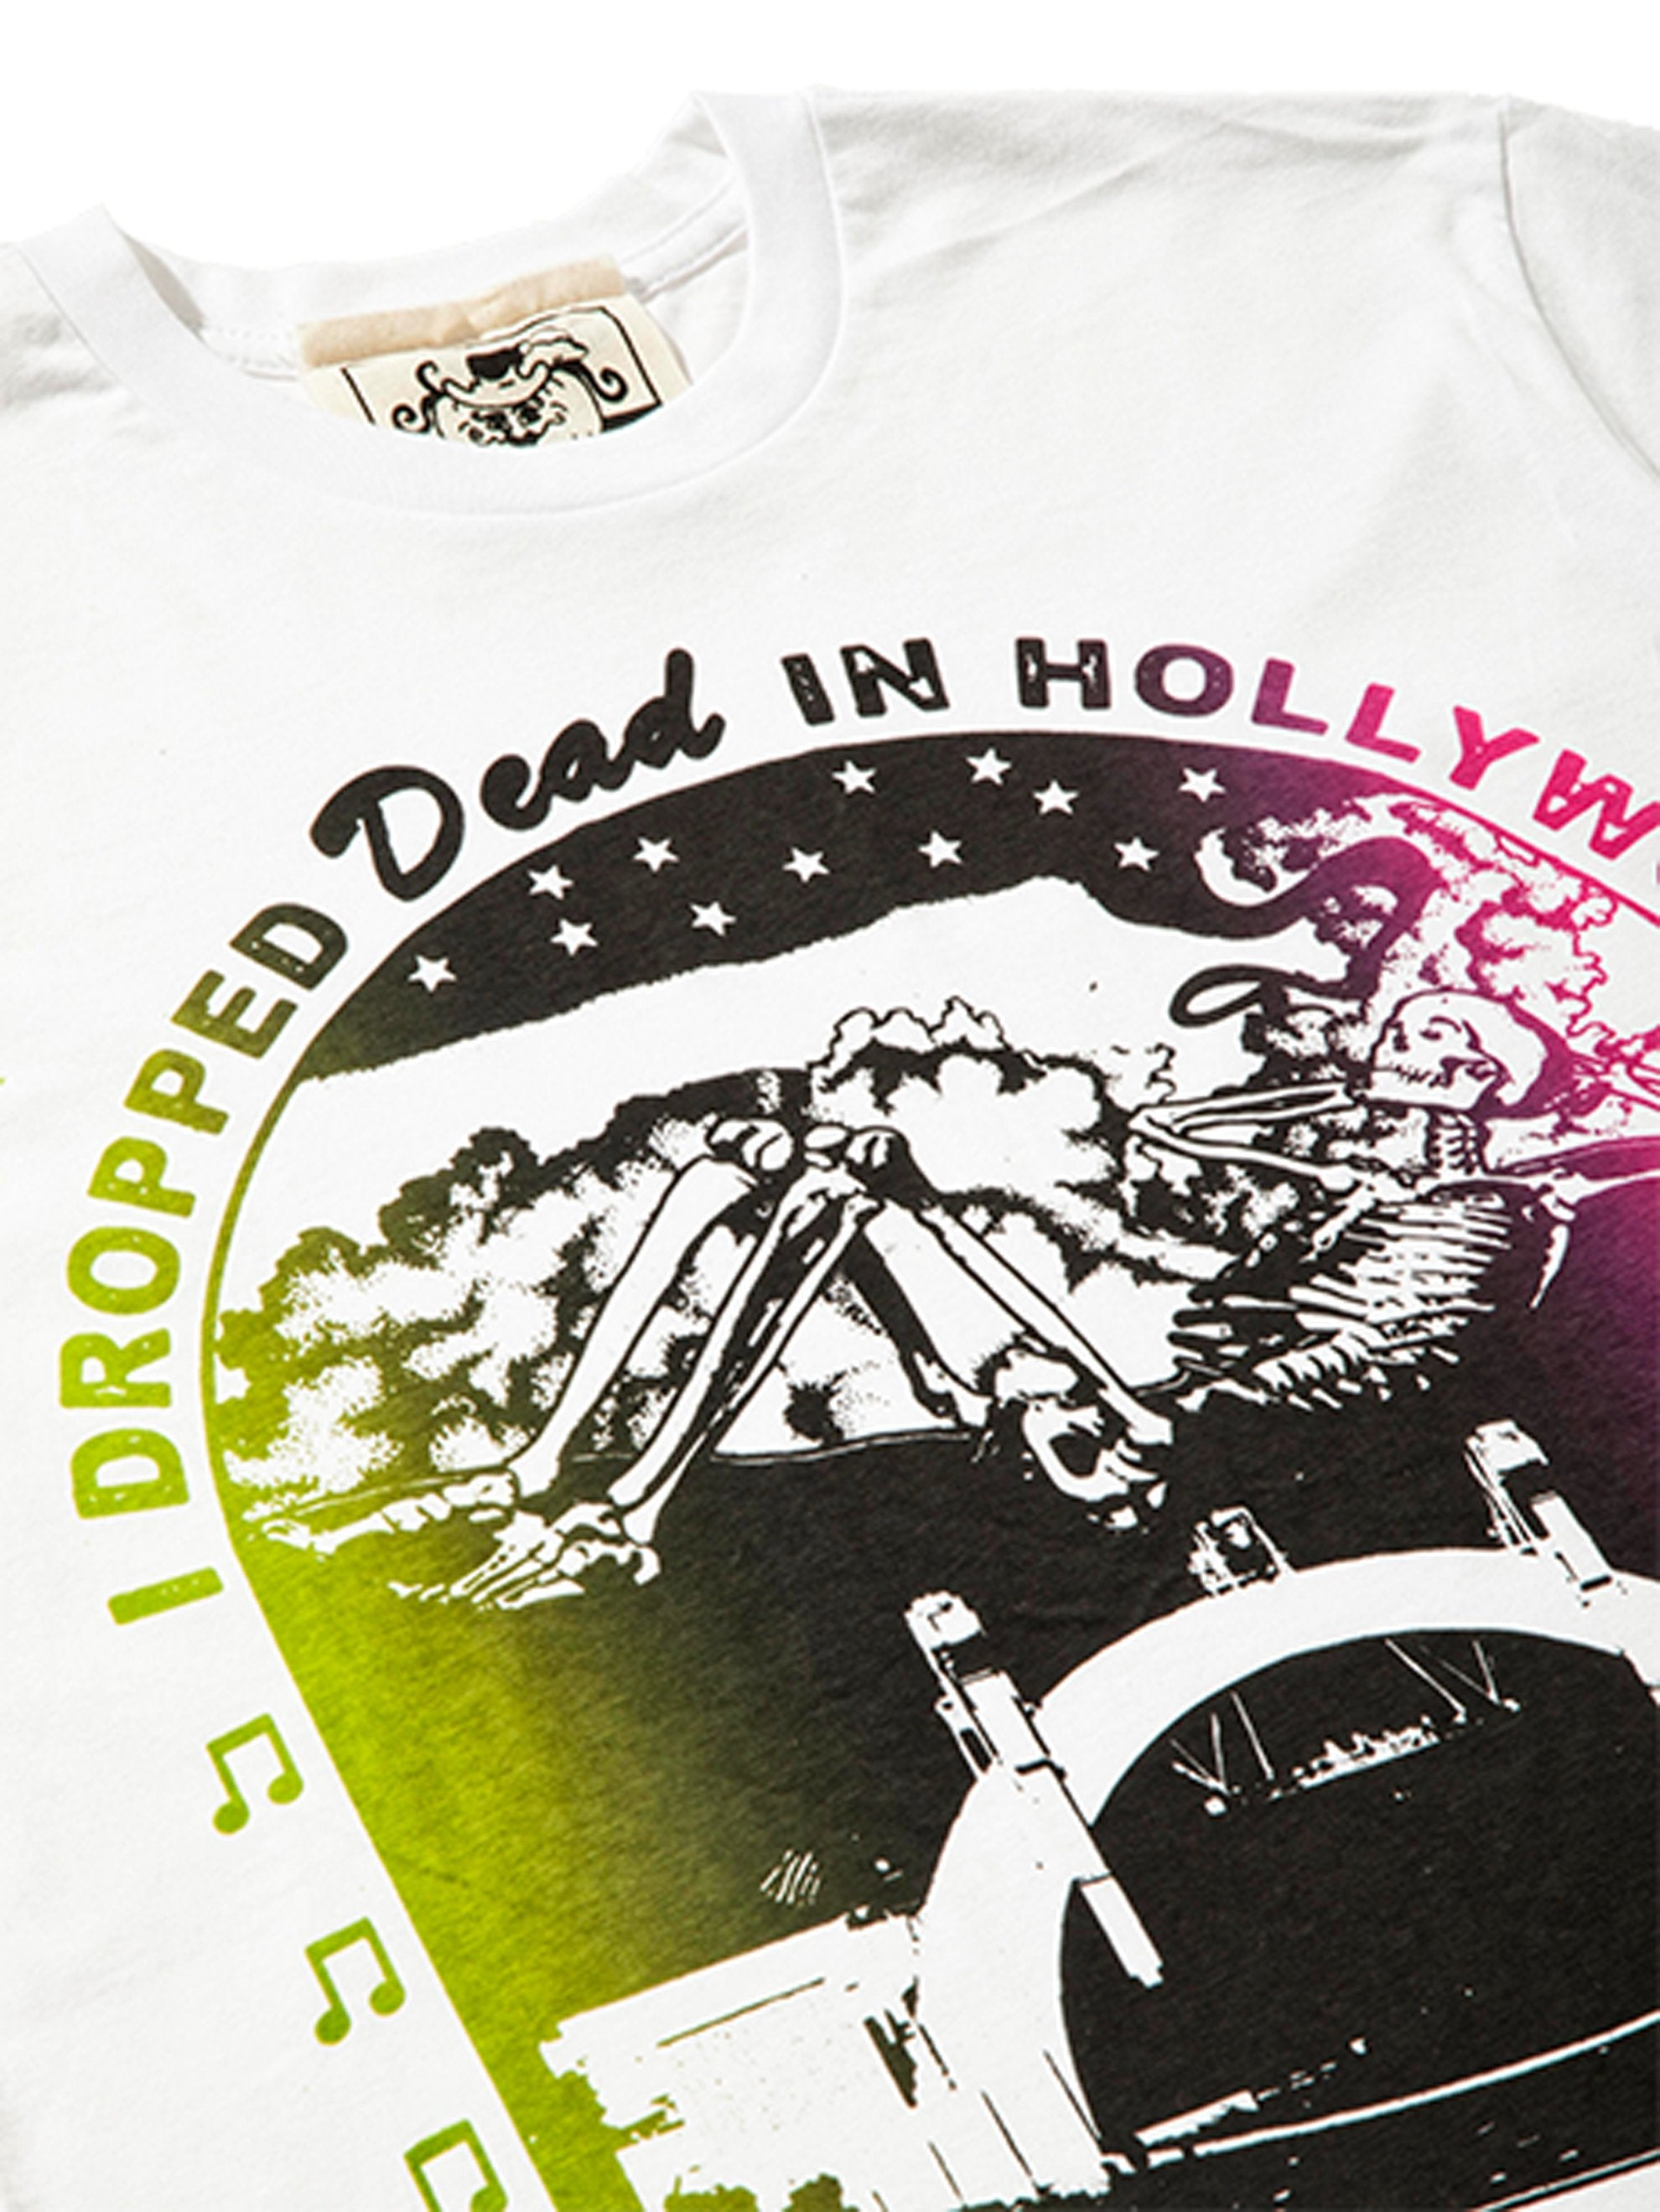 White Dropped Dead in Hollywood T-Shirt 5